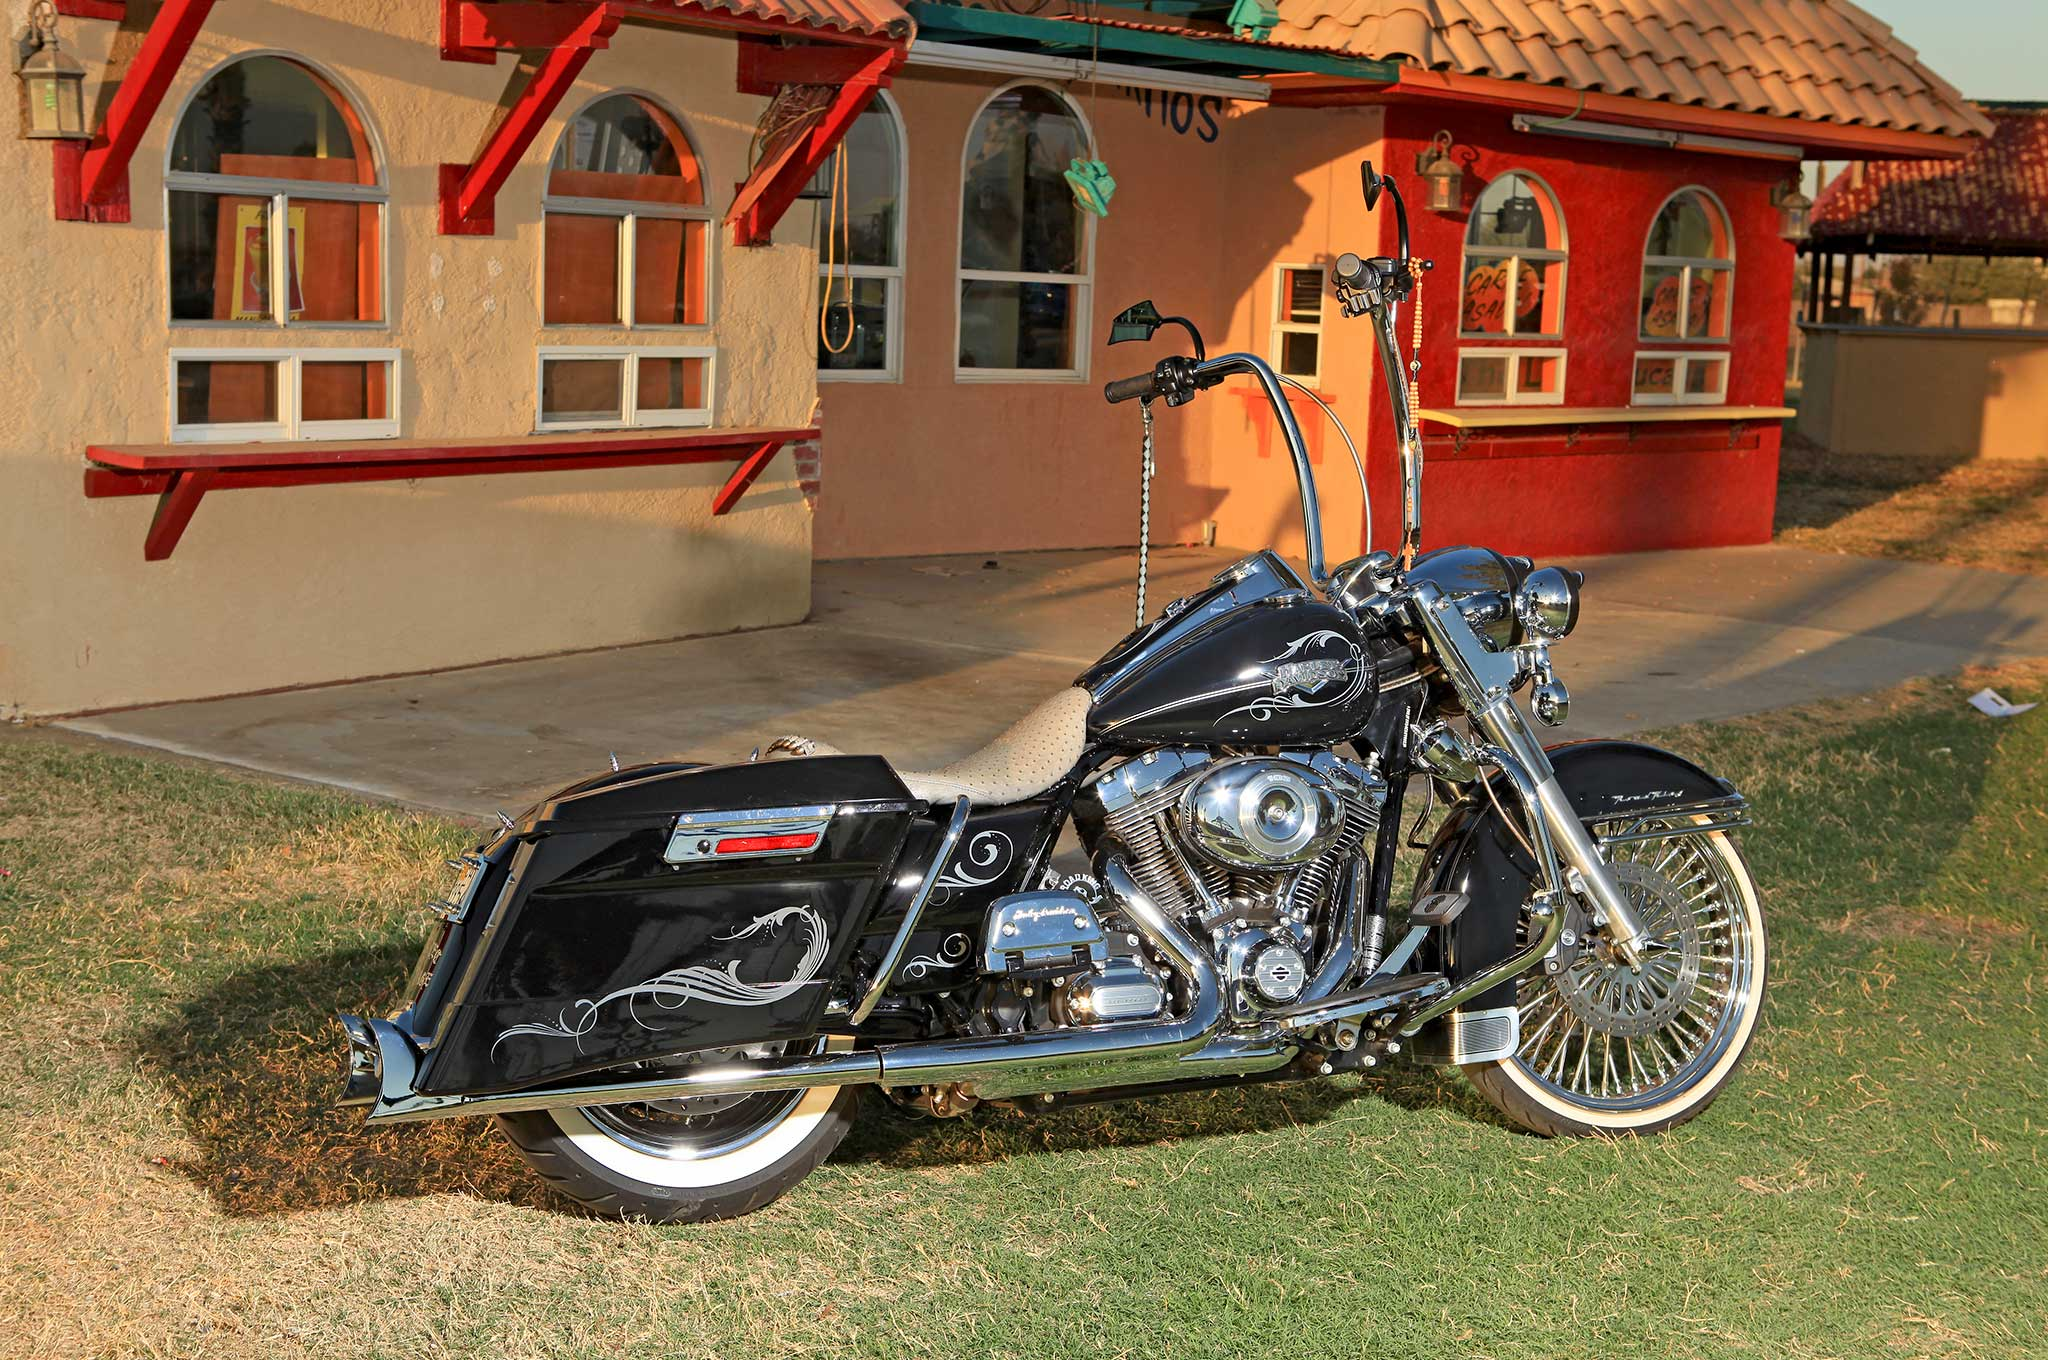 2012 Harley-Davidson Road King - Childhood Hero - Lowrider